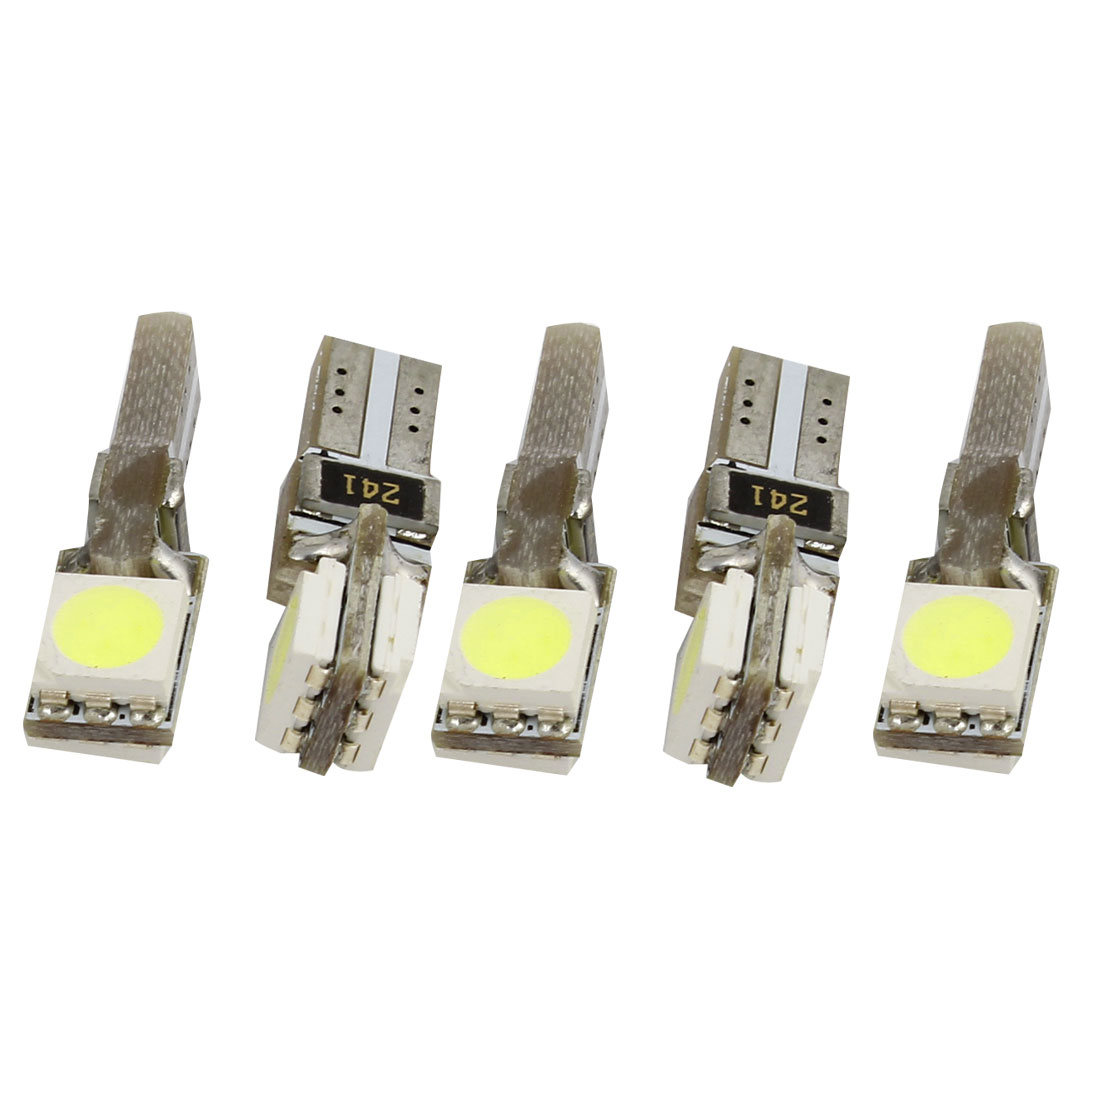 5 Pcs T5 Wedge 5050 2 SMD White Speedometer Gauge Cluster LED Light Bulb Lamp 12V internal